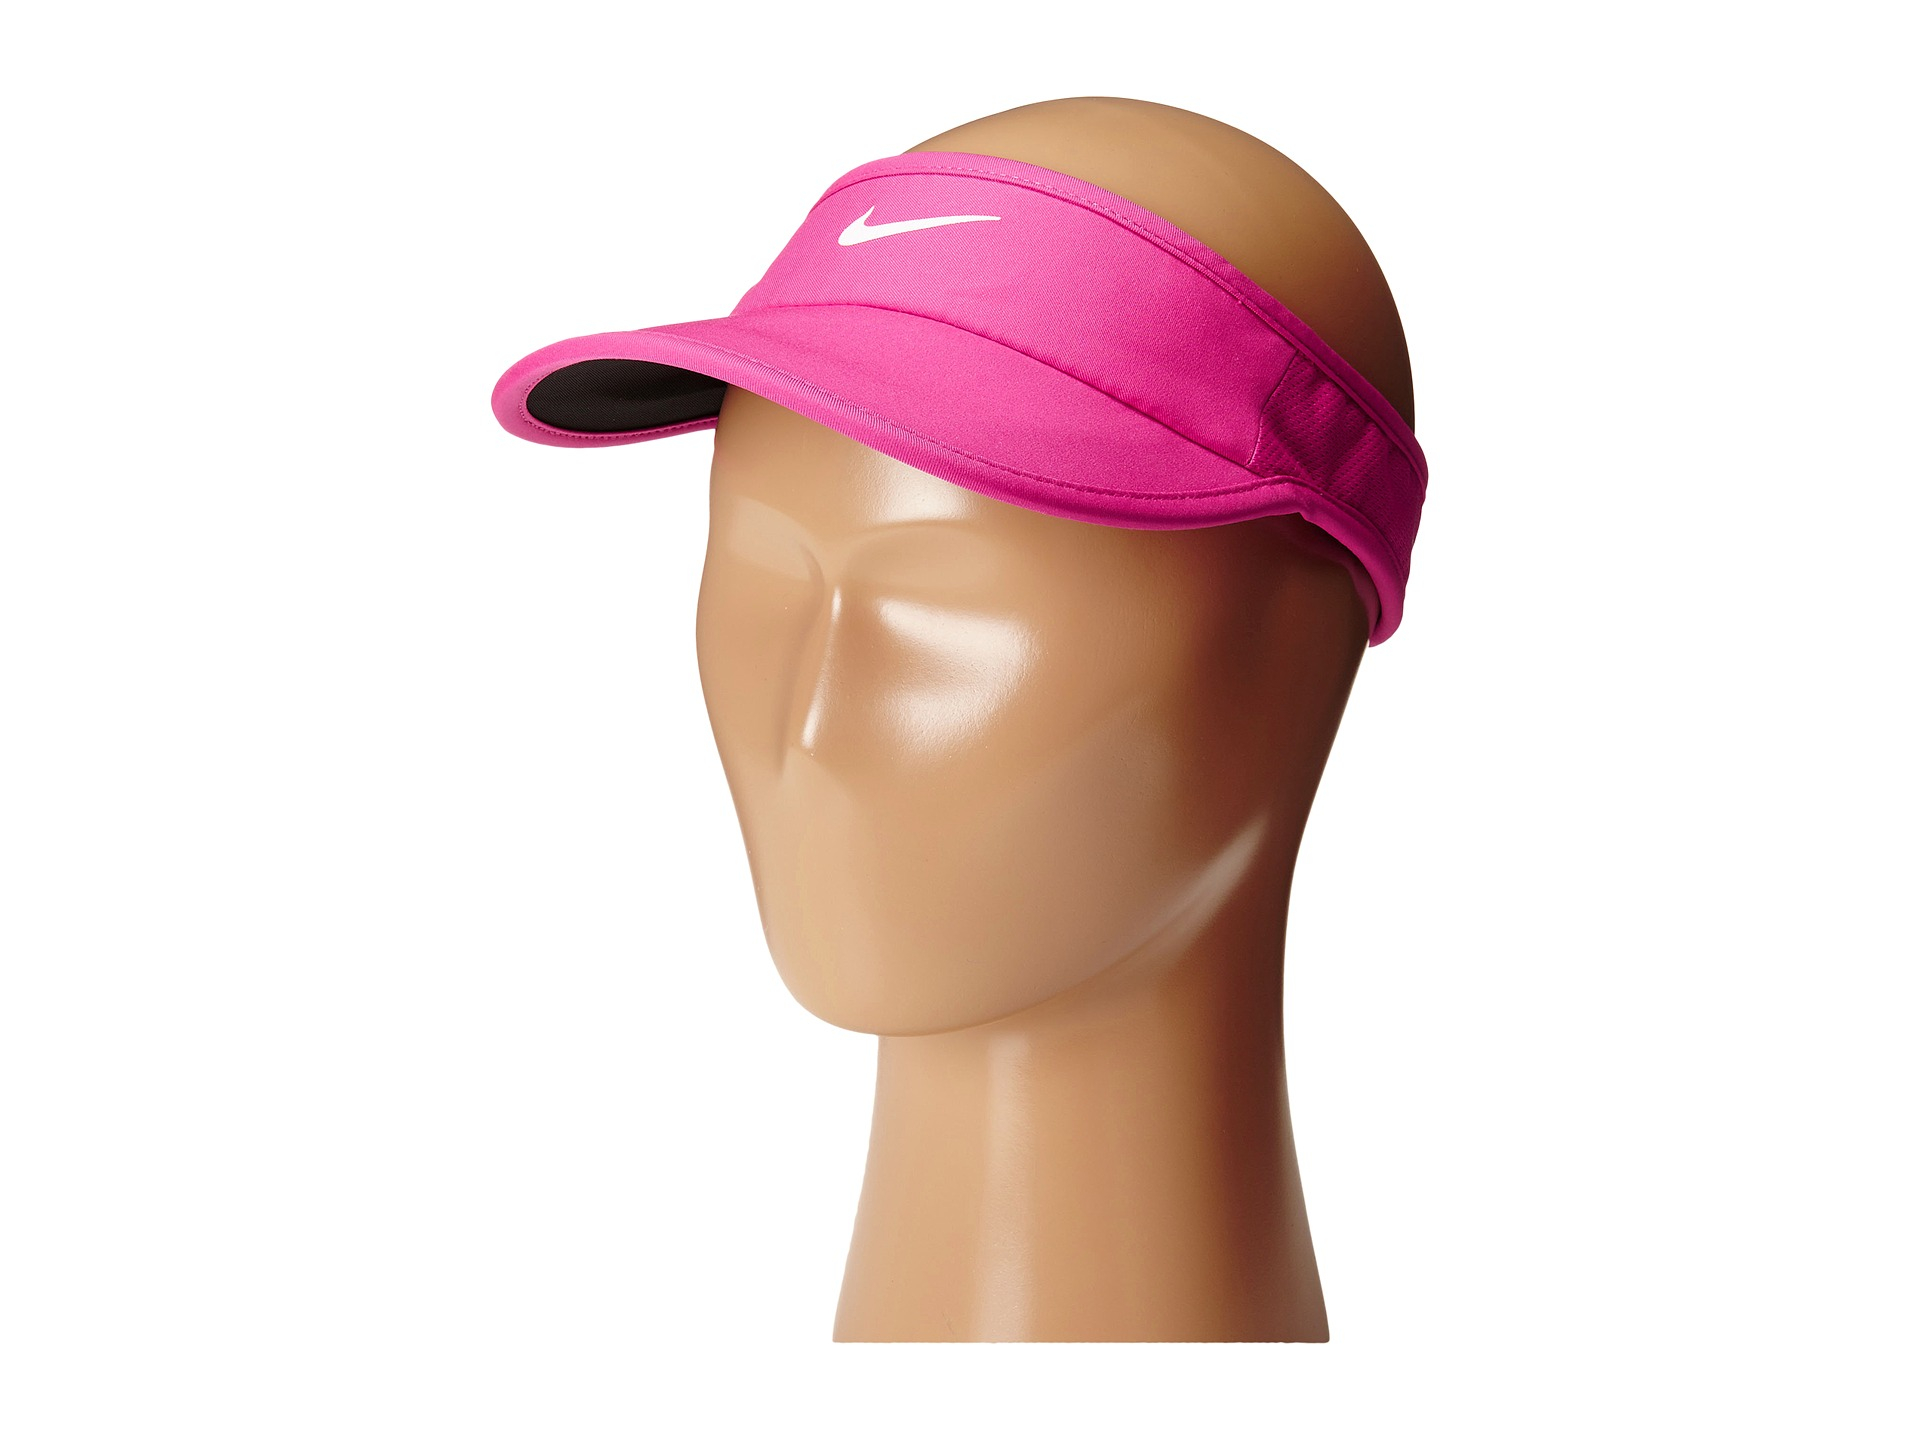 Lyst - Nike Featherlight 2.0 Visor in Pink 42387738ad71